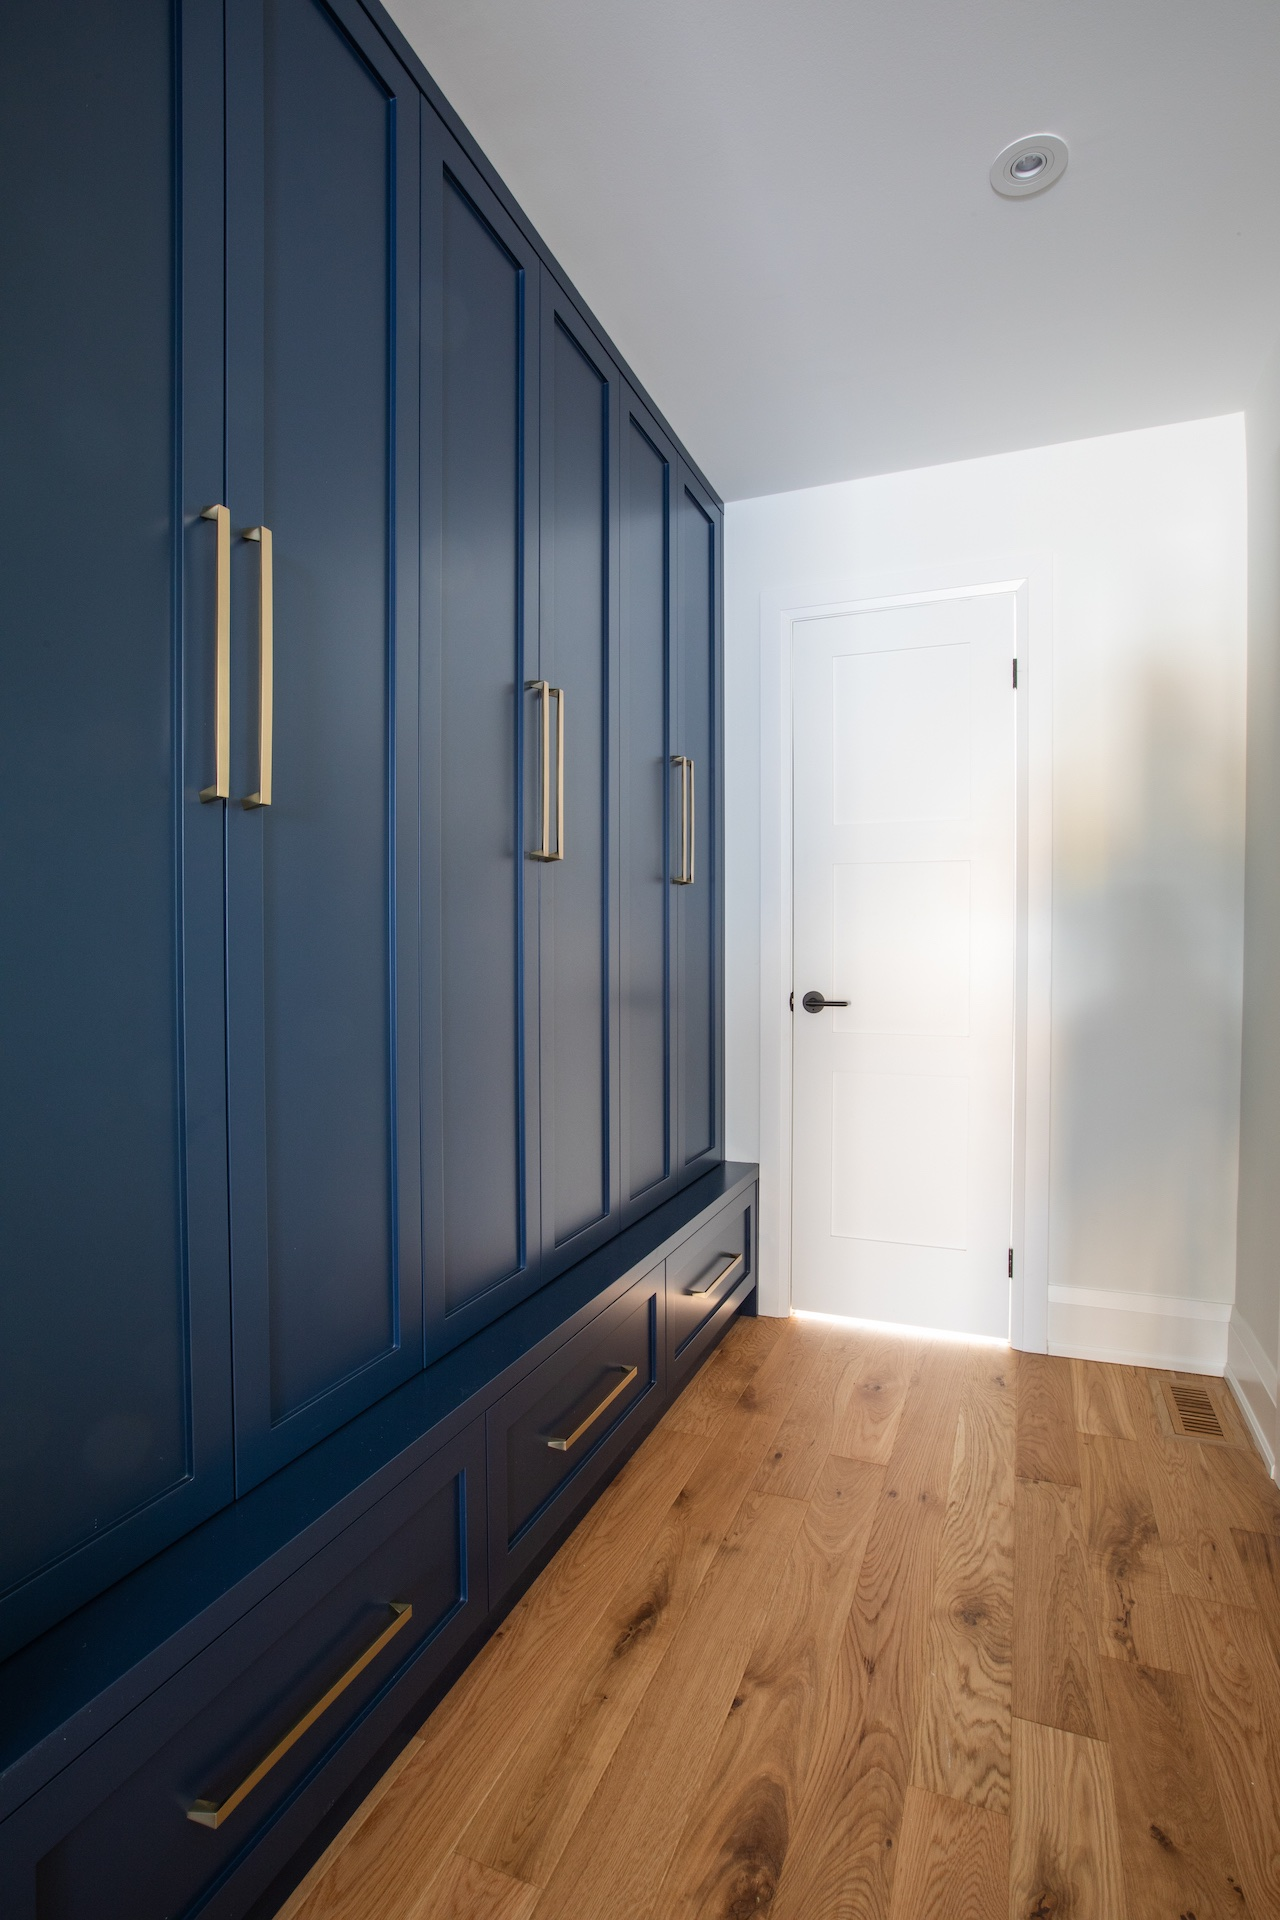 Blue cabinets with gold hardware